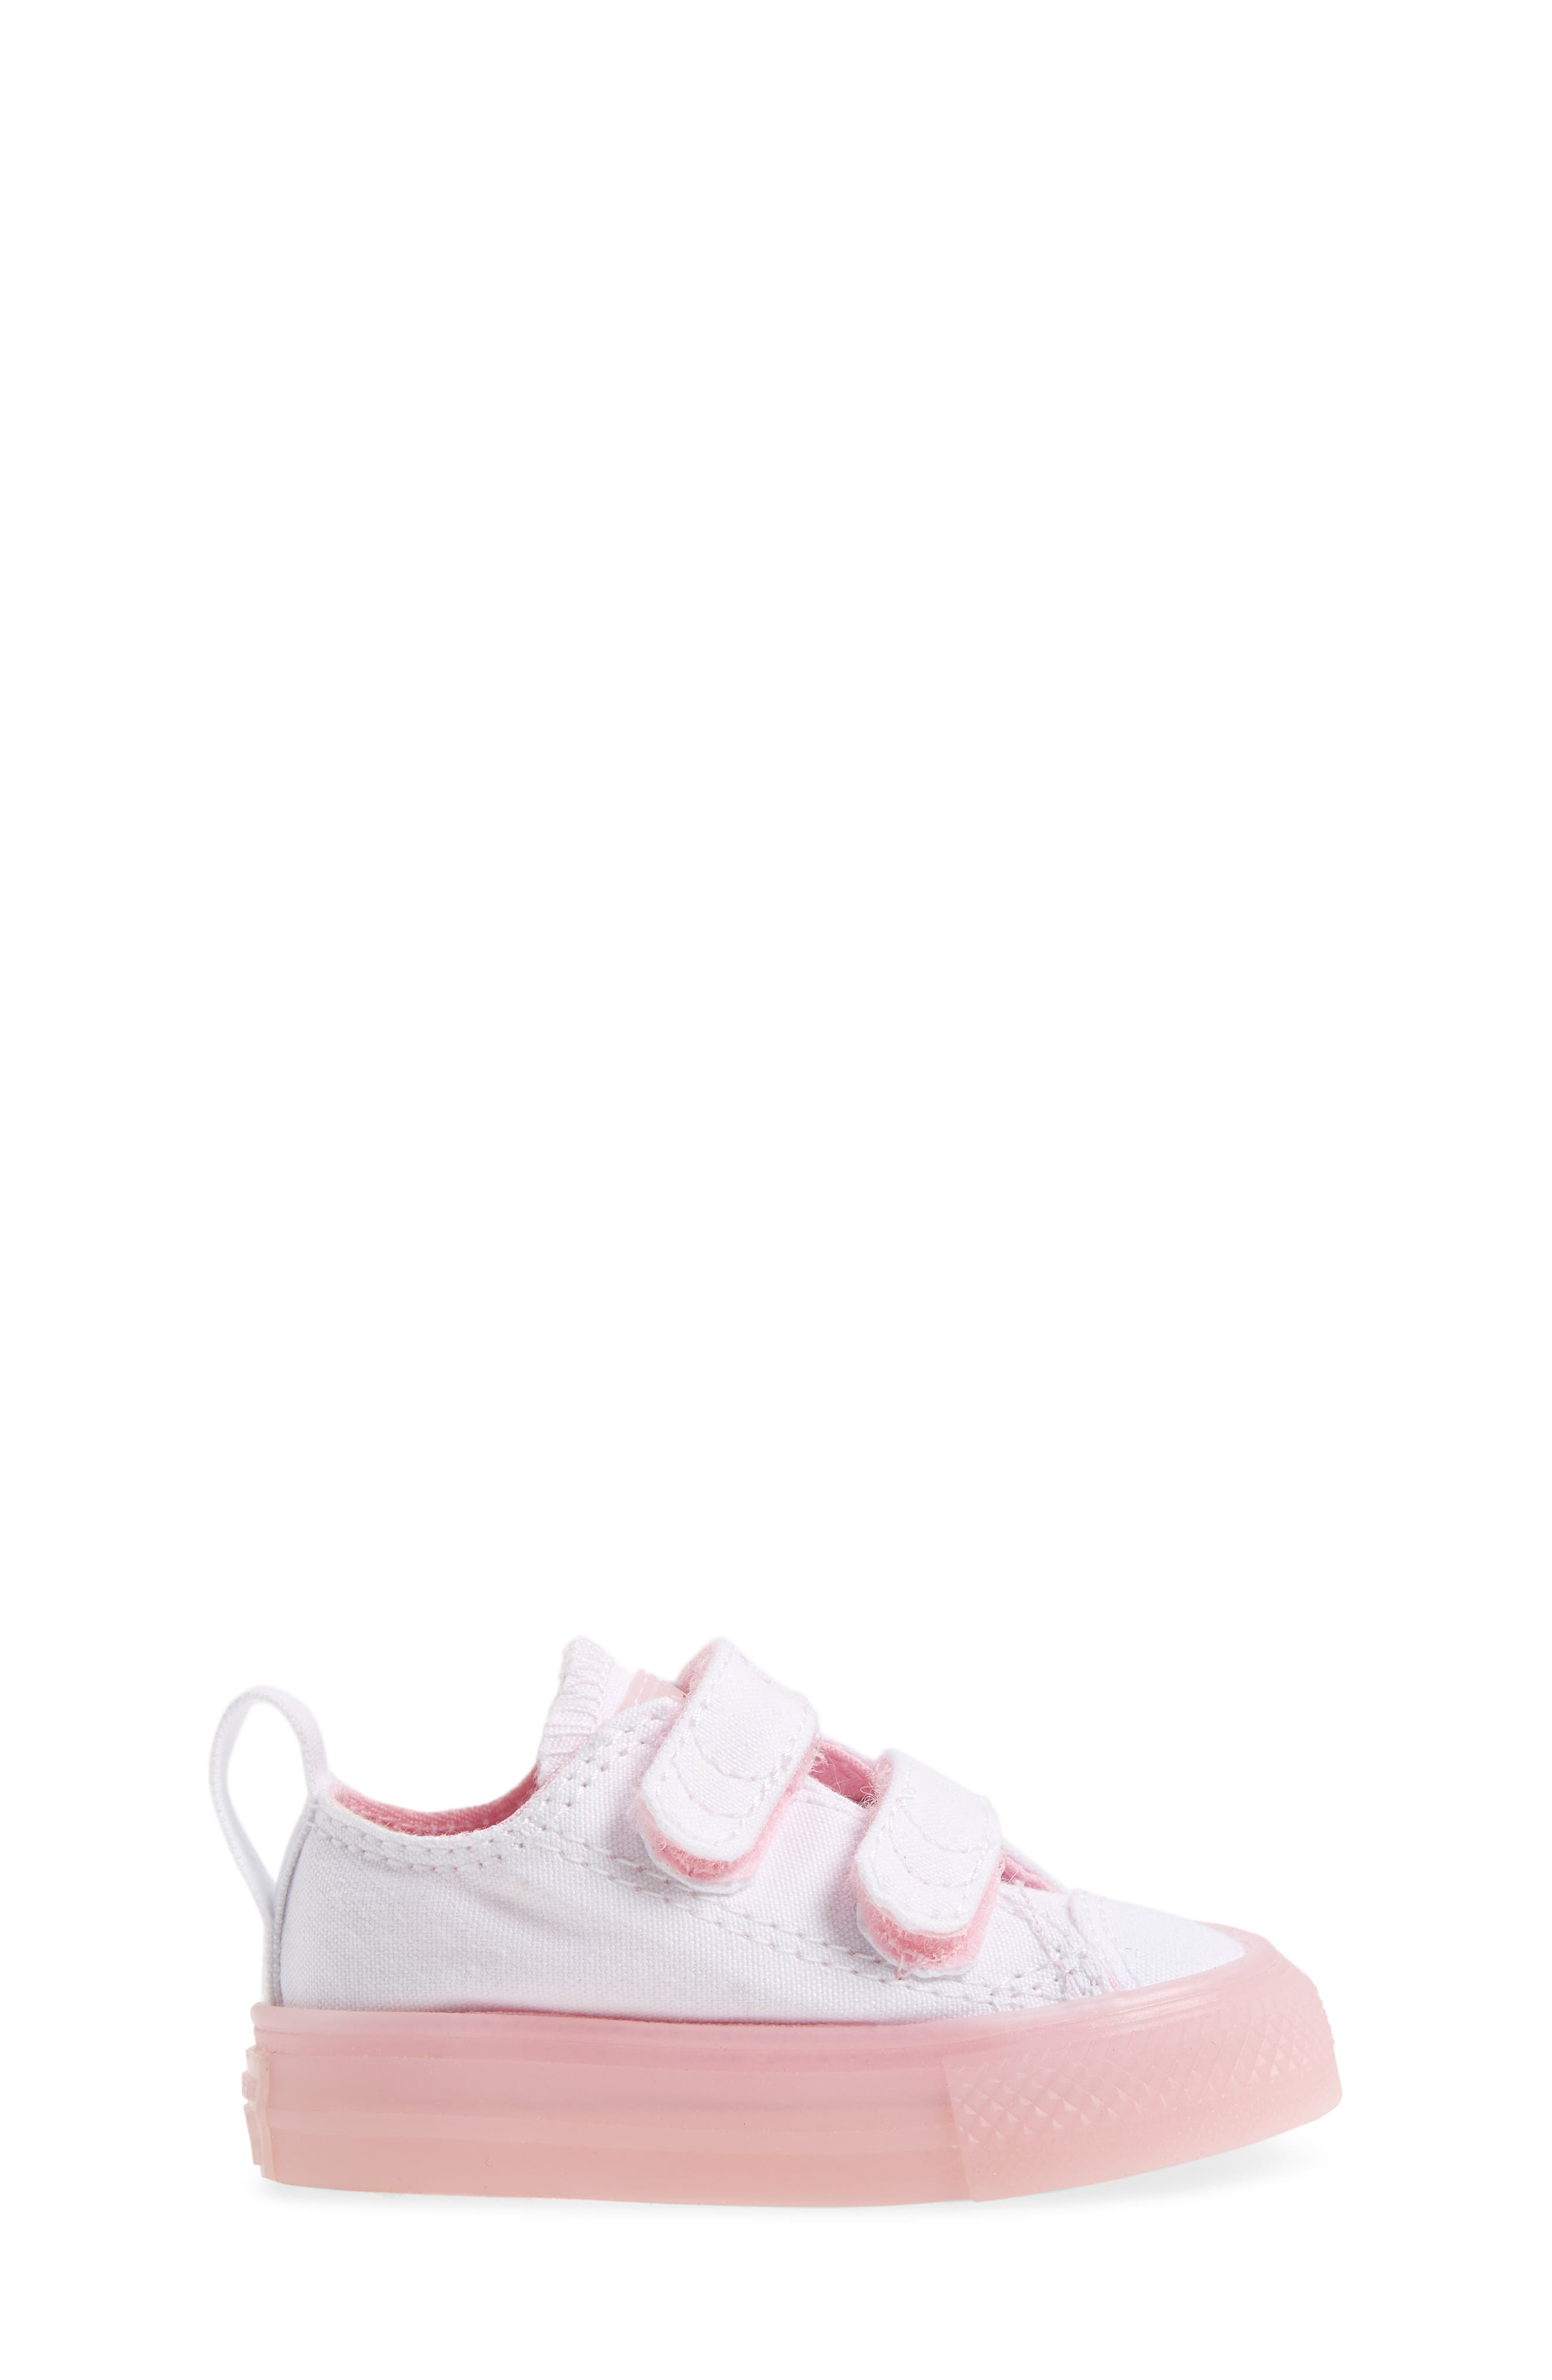 Chuck Taylor<sup>®</sup> All Star<sup>®</sup> Jelly Sneaker,                             Alternate thumbnail 3, color,                             100